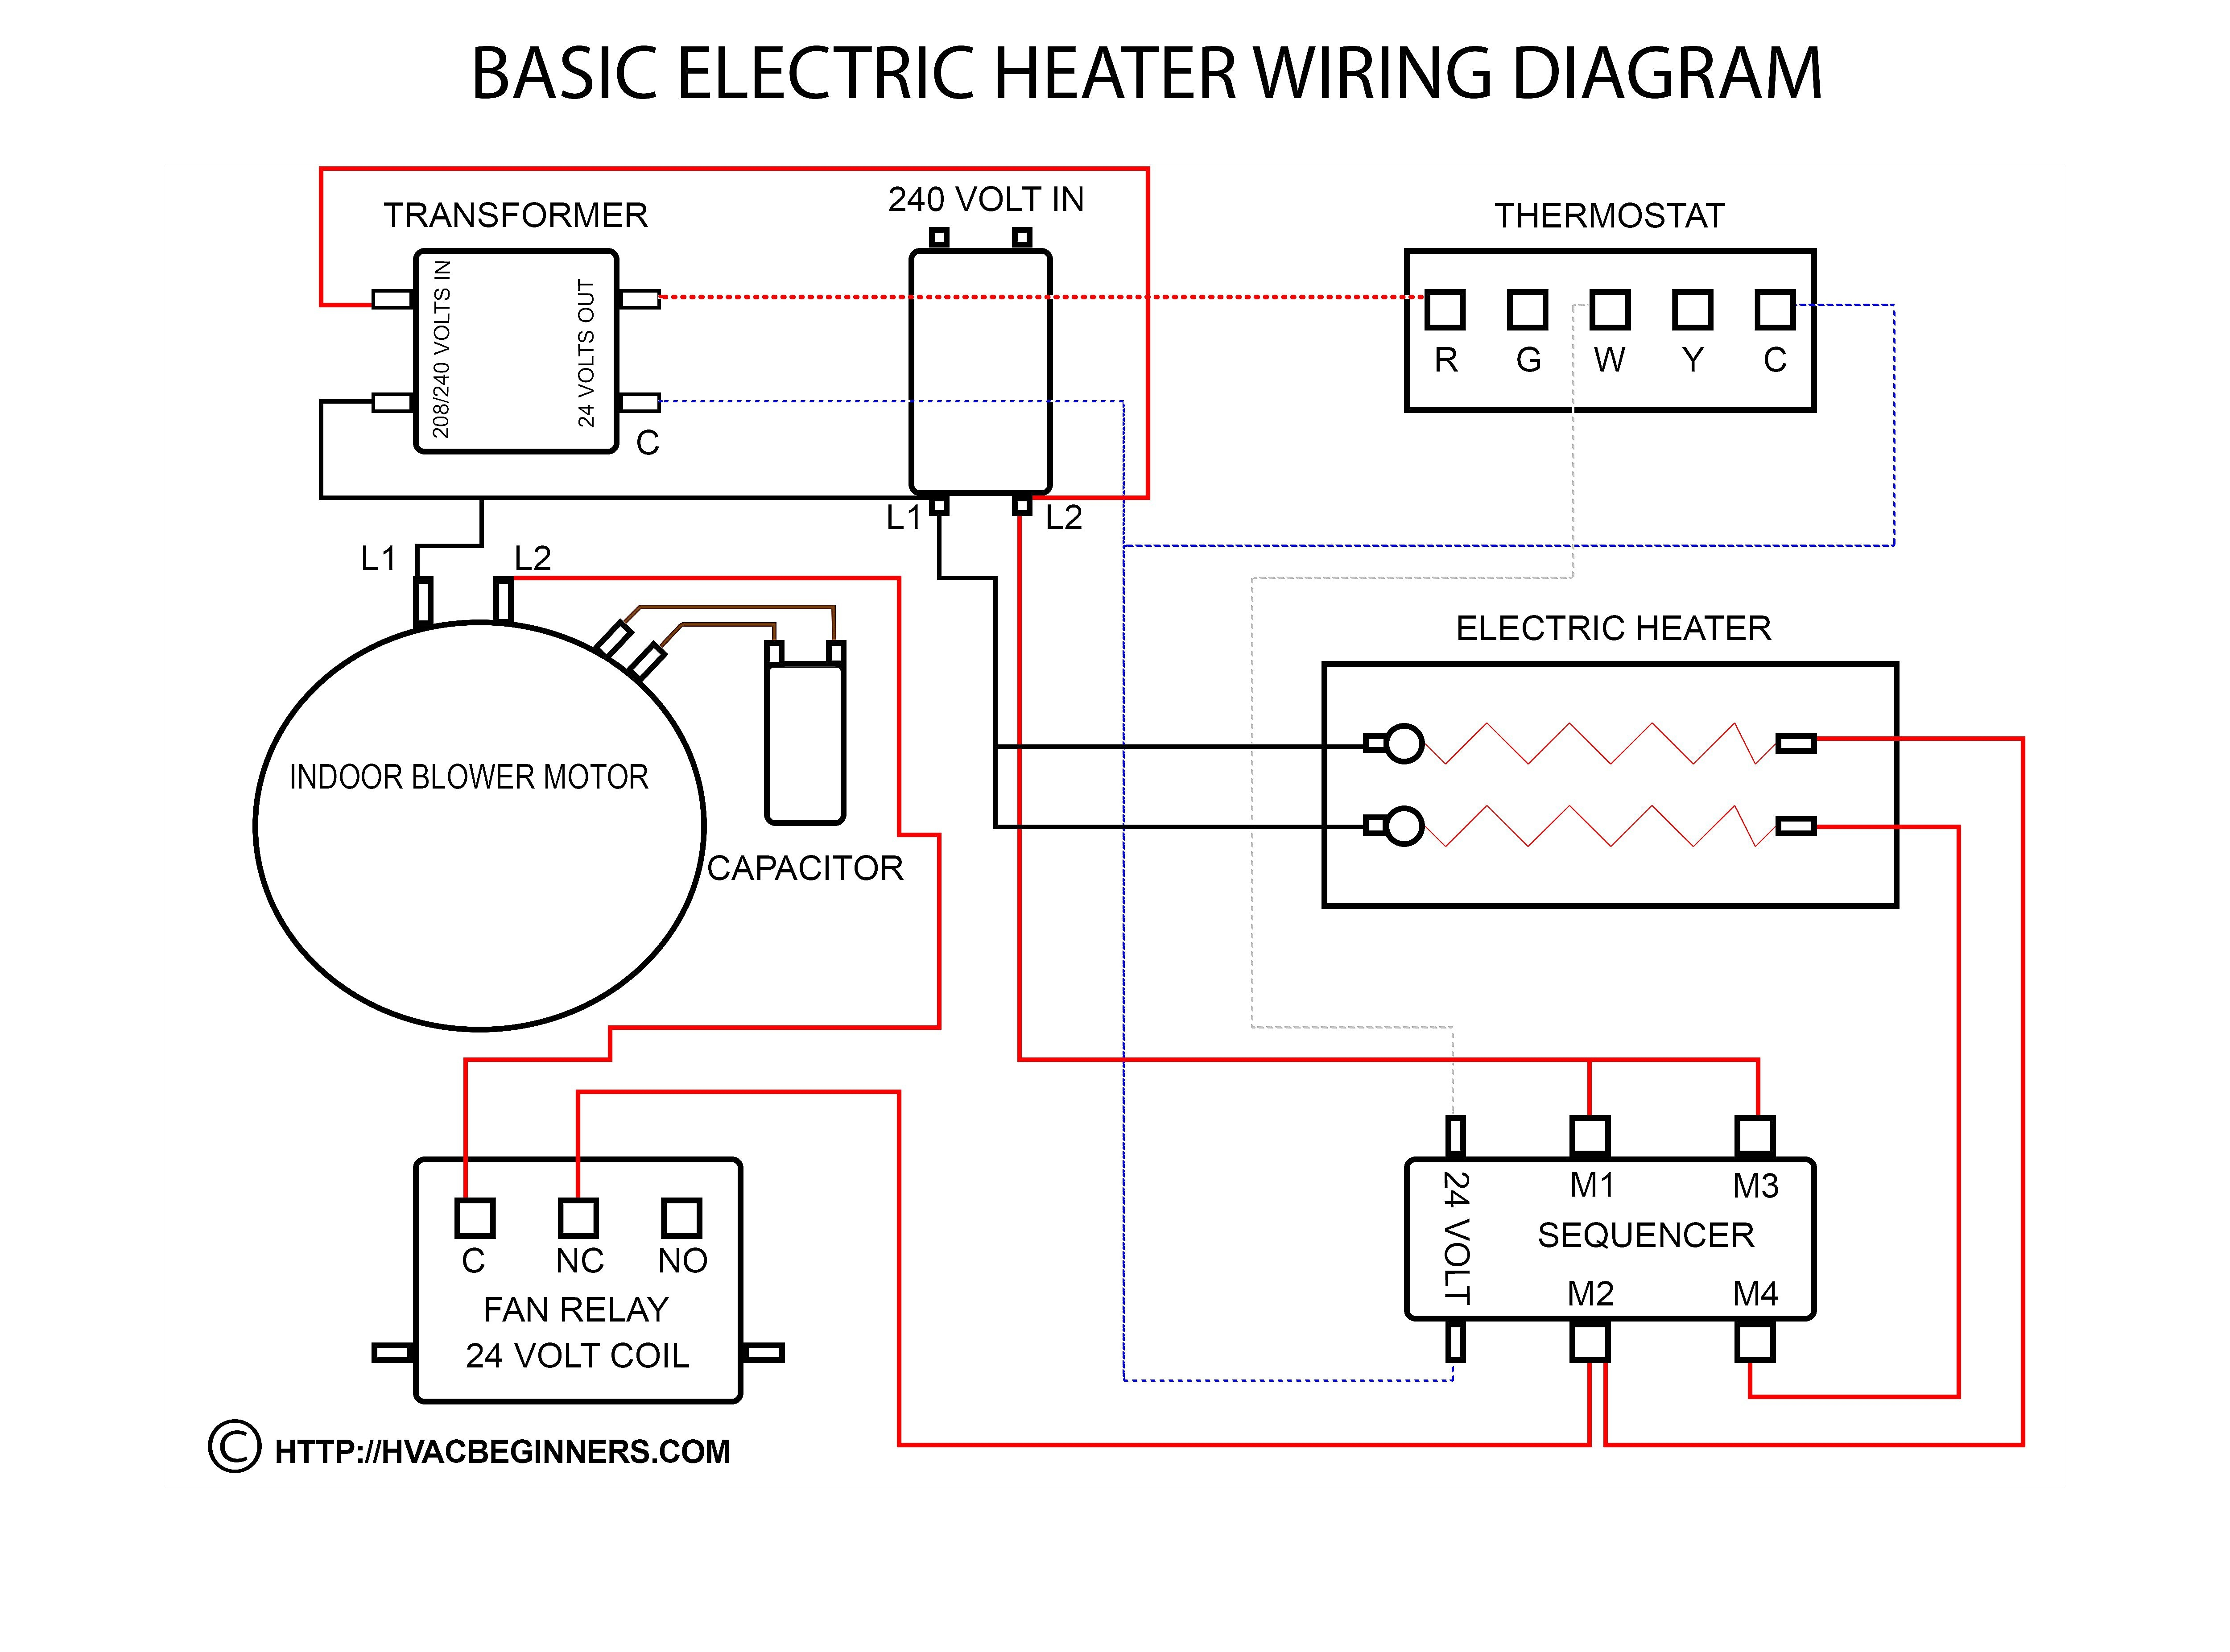 Well Pump Pressure Switch Wiring Diagram New Gas Furnace Wiring Diagram Excellent Appearance Muffle Wire